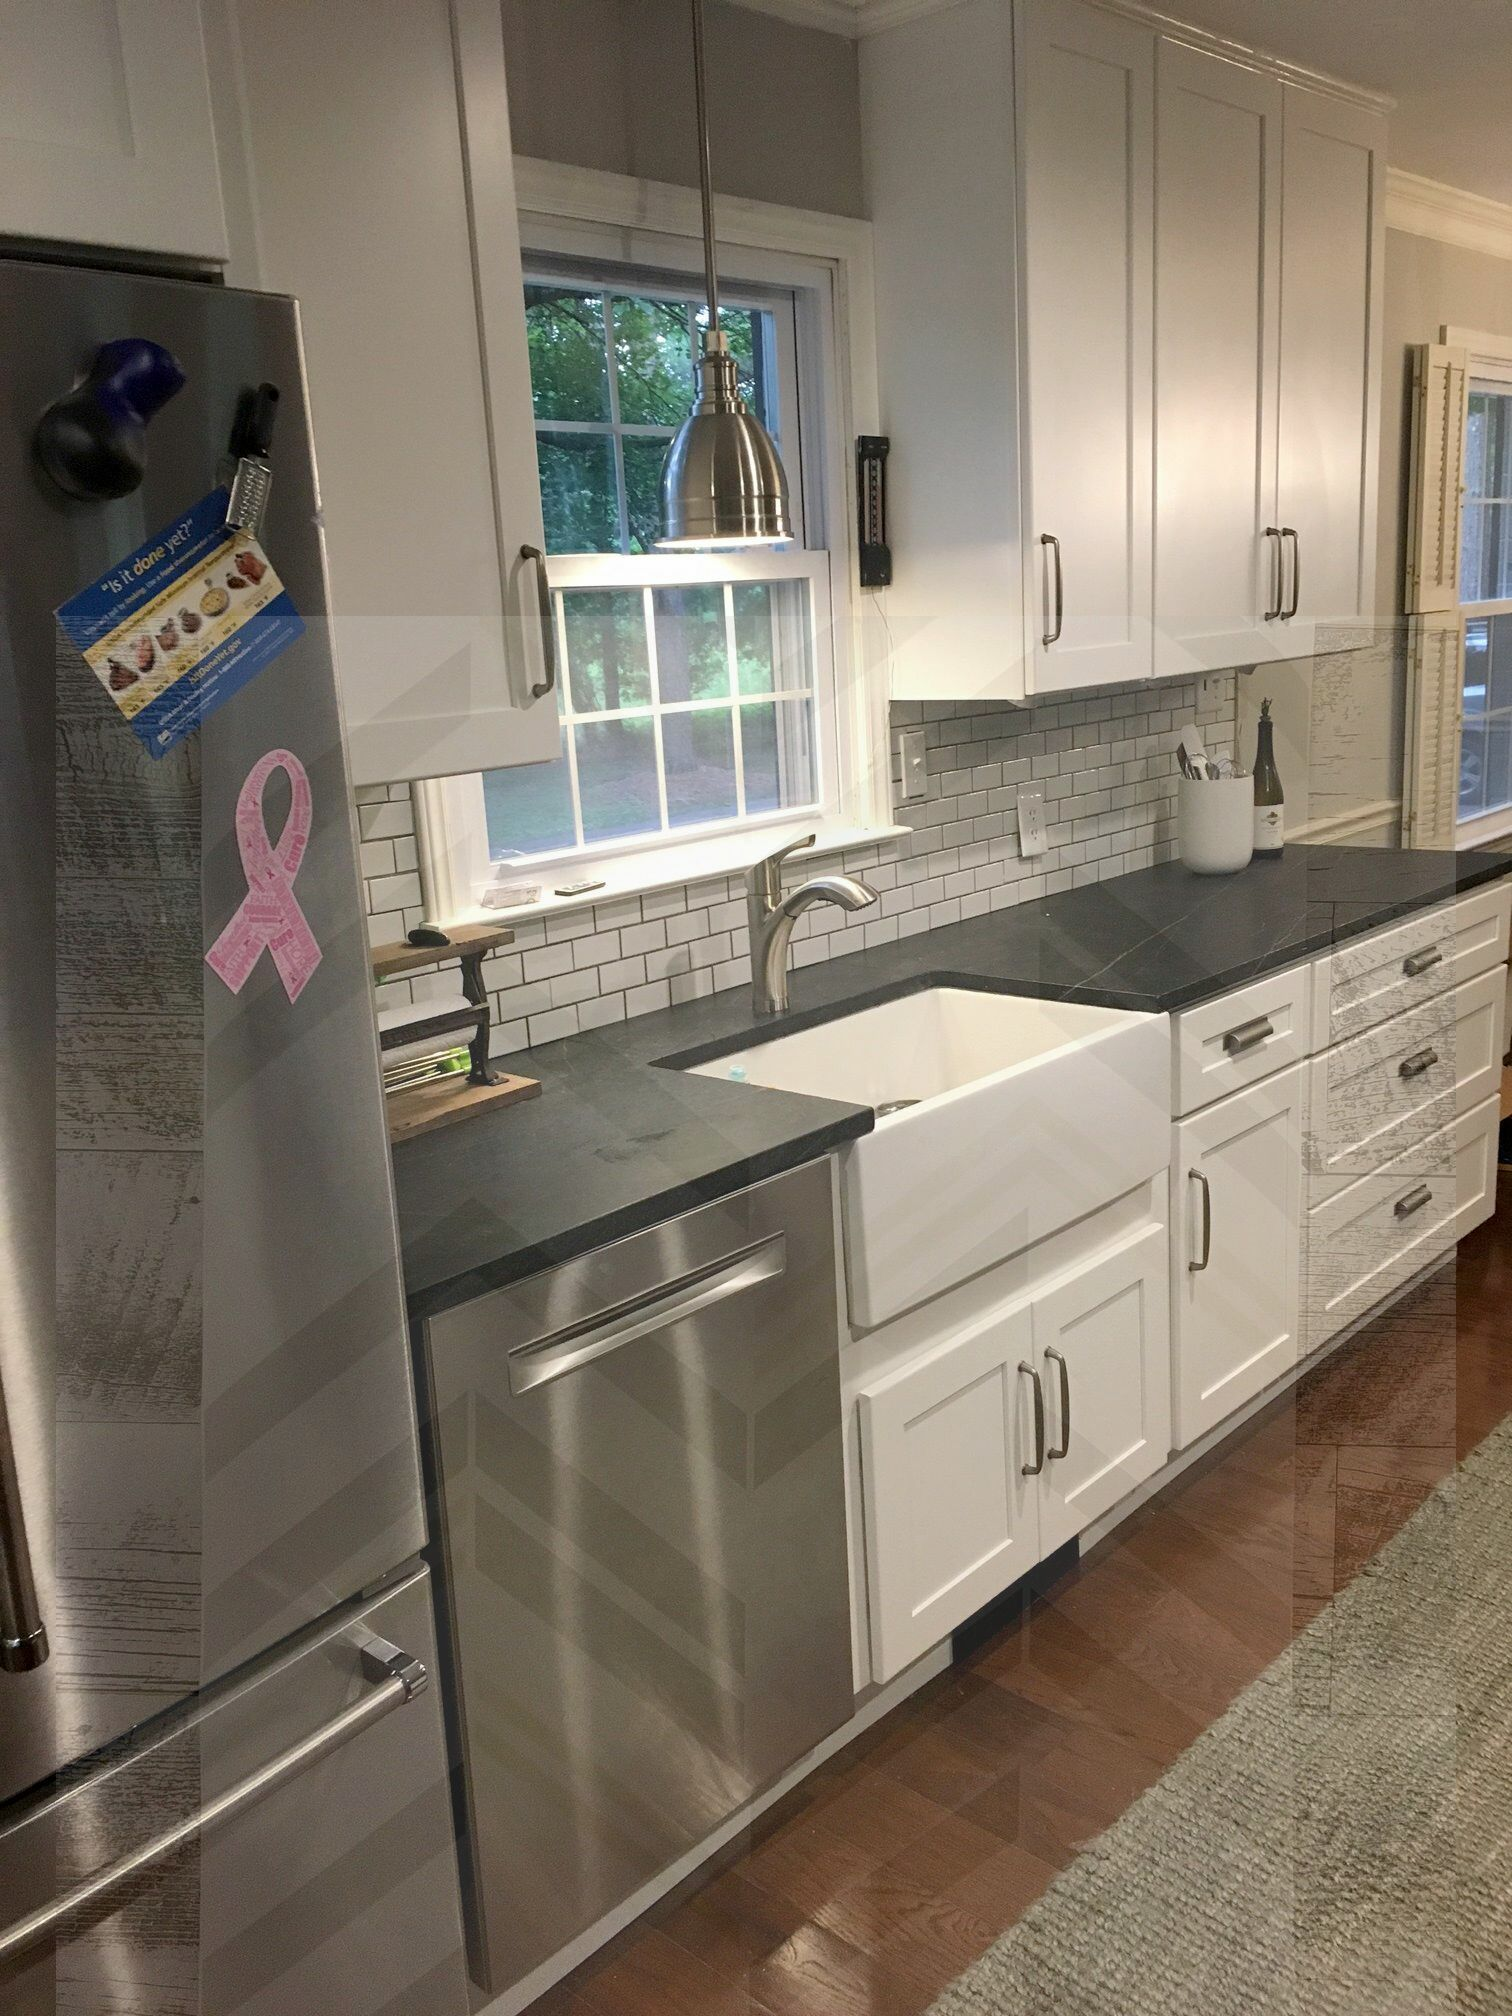 Astounding Funding Your Home Remodeling Project Ideas Galley Kitchen Design Galley Kitchen Remodel Small Galley Kitchen Designs